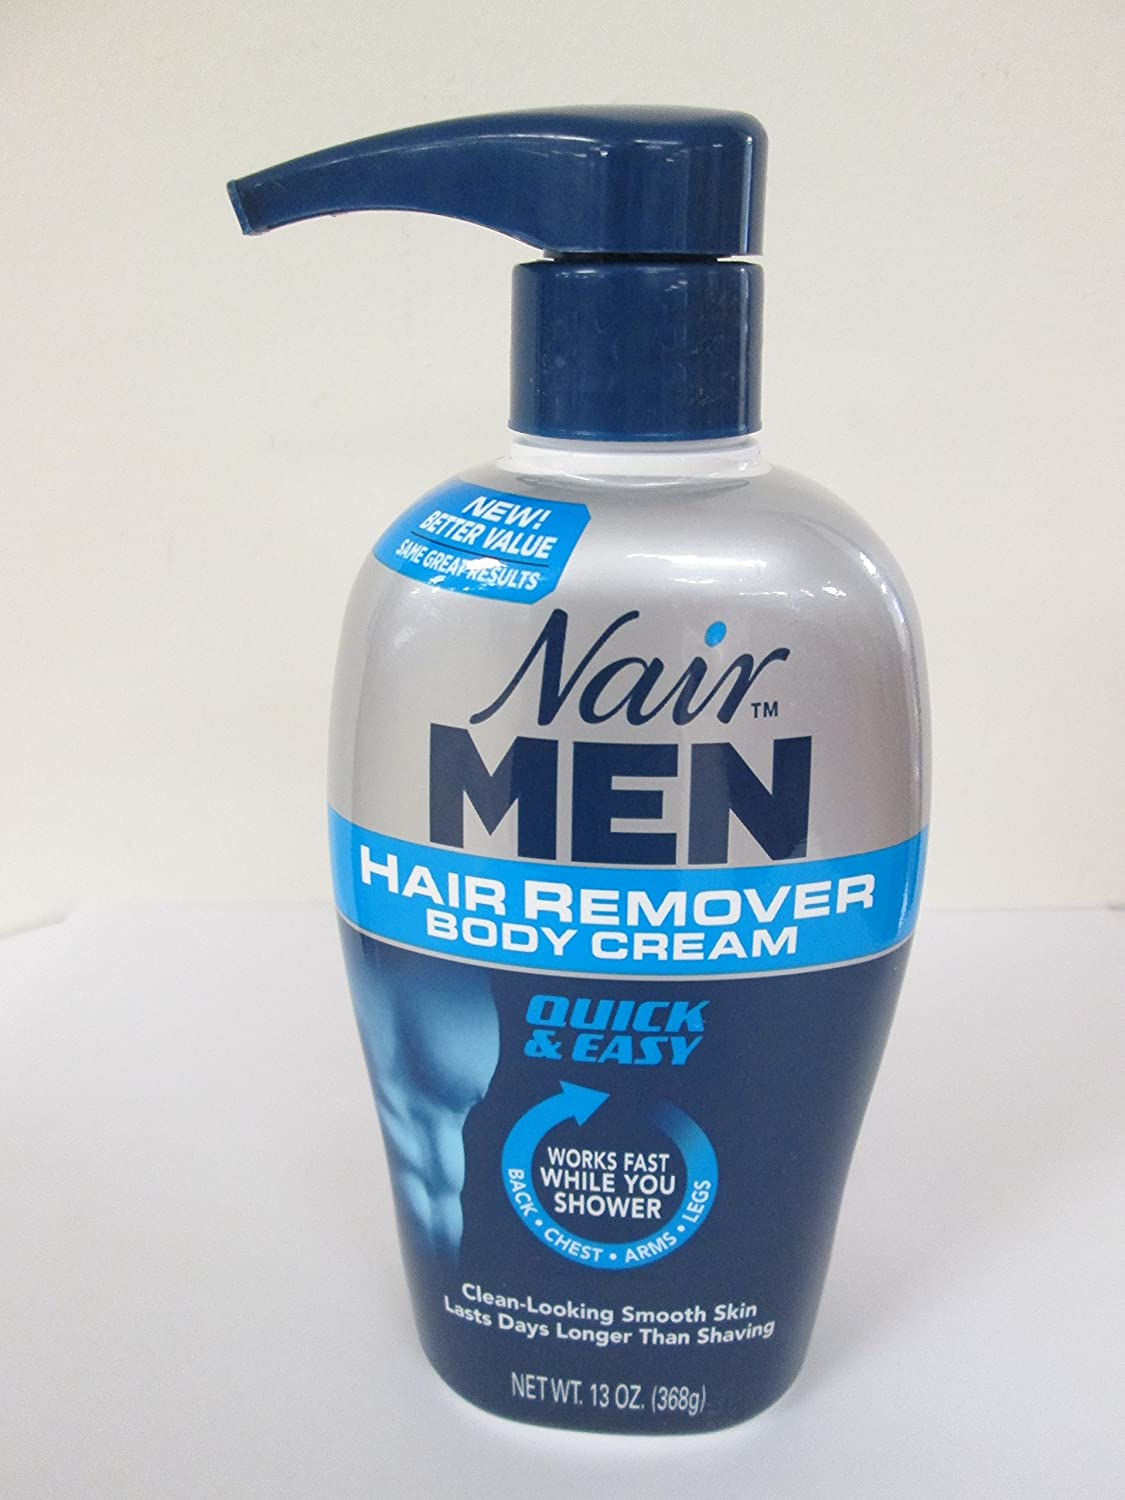 Nair Hair Remover Men Body Cream 13oz Pump (6 Pack)